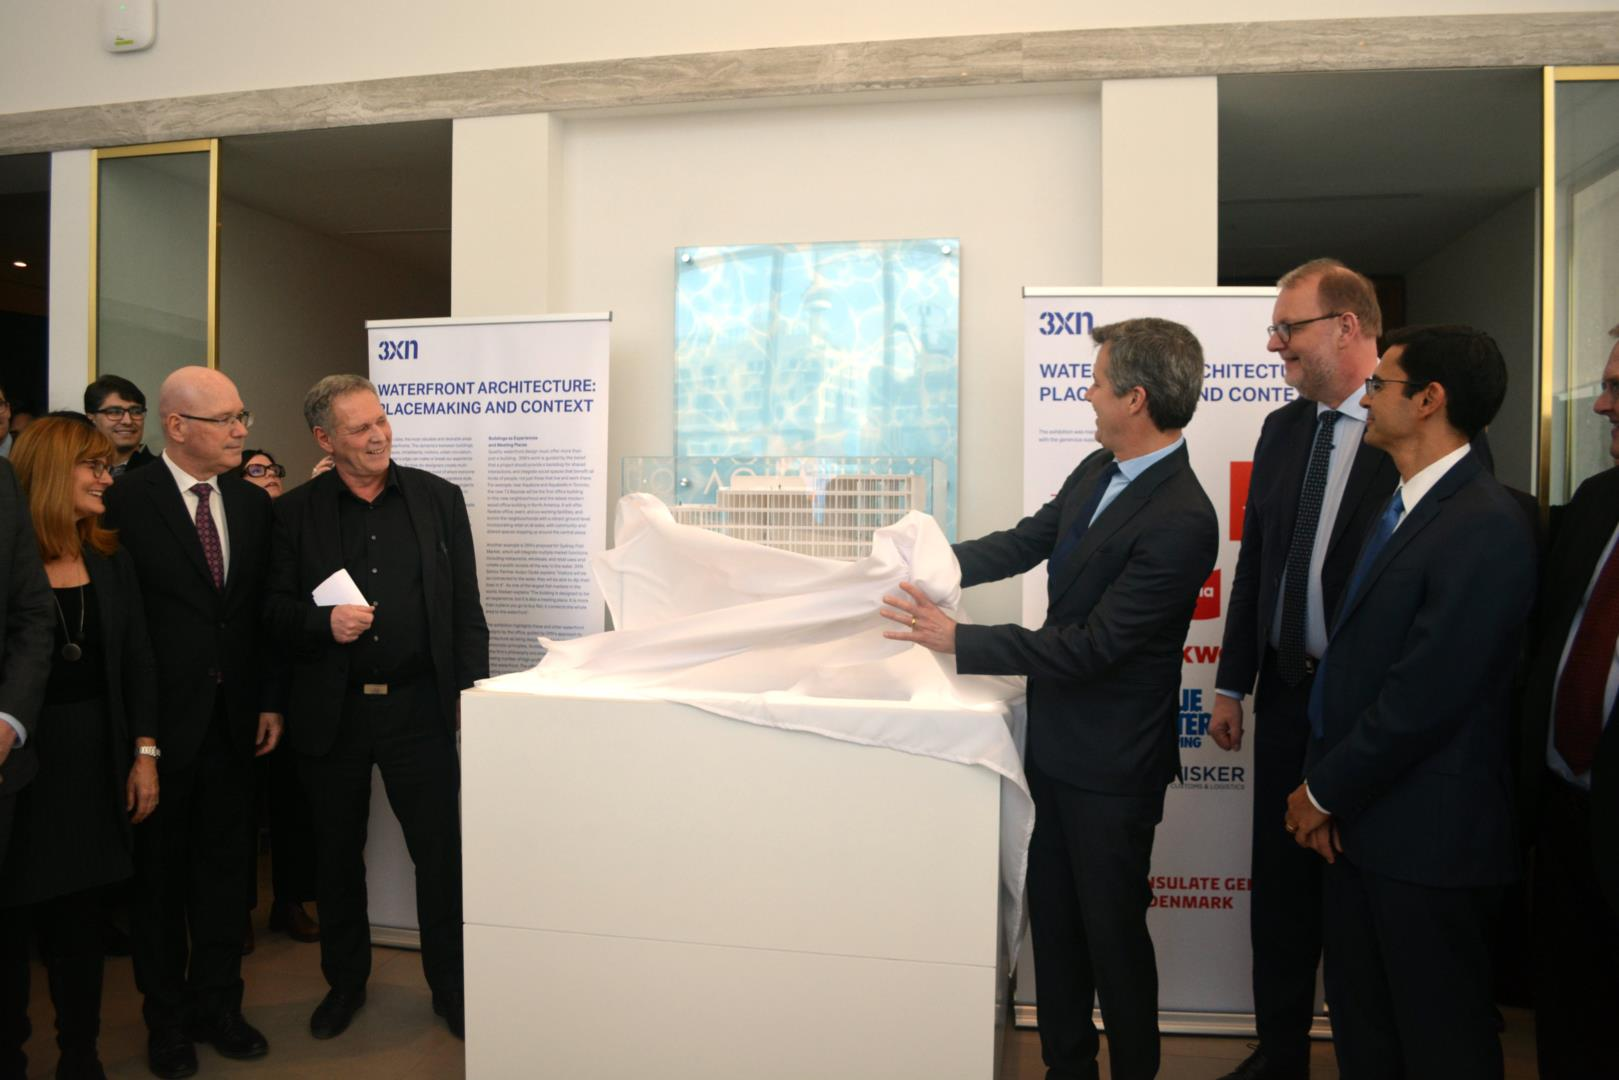 Crown Prince of Denmark unveils architecture exhibit at Aqualuna presentation centre Image